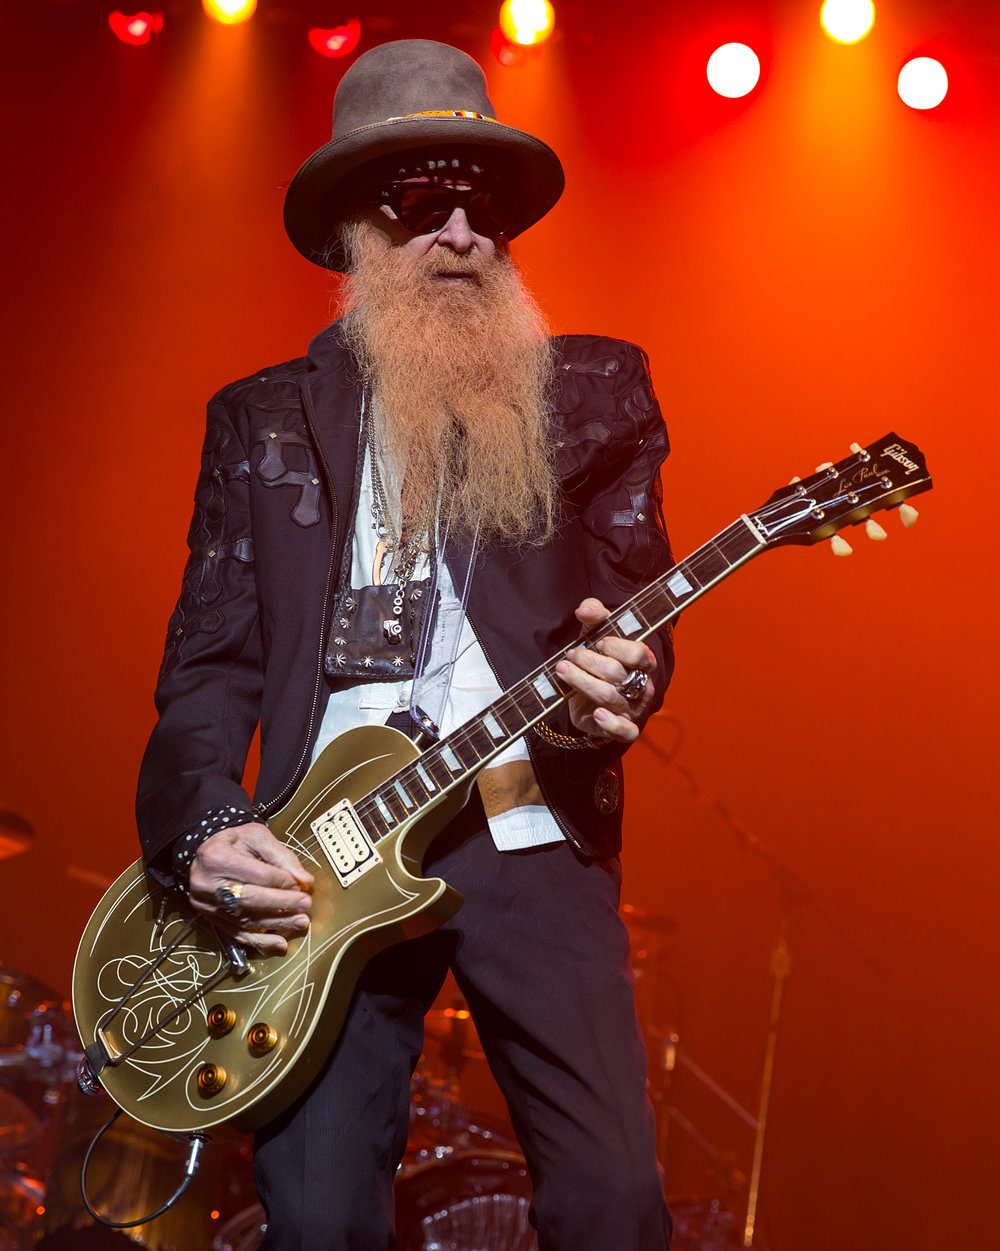 Billy Gibbons AO Gear: Sarge ZZ Top guitarist Billy Gibbons is unquestionably one of the finest blues-rock guitarists to ever emerge from Texas. Over the course of five classic albums over a six-year span, ZZ Top became one of the country's top rock bands.